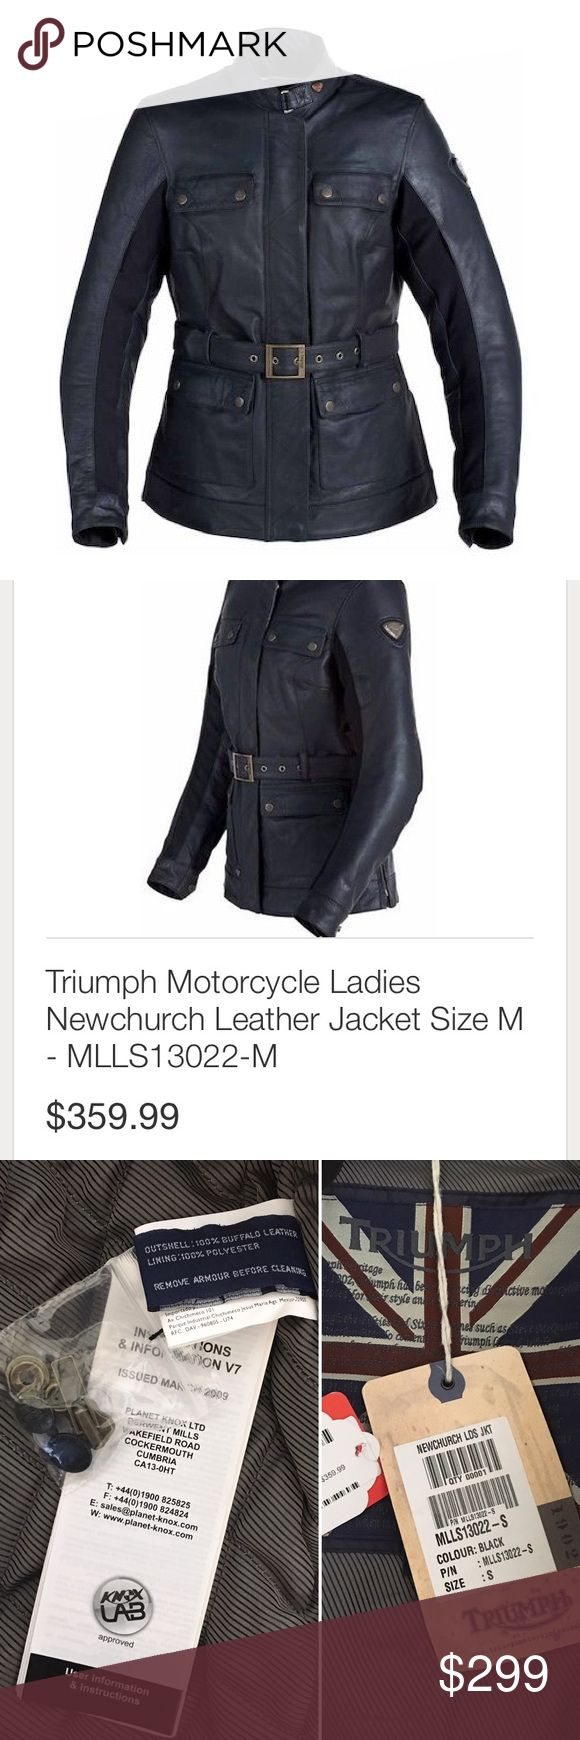 Triumph womens leather motorcycle jacket-NWT BRAND NEW WITH TAGS NEVER WORN - the Triumph newchurch leather women's motorcycle jacket. Retails for $360 as you can see on the tag in the pic. Size small. This AMAZING quality moto jacket features all over armored protection, fully lined and quilted warm interior, multiple pockets, zipper, button, and removable buckle COMES WITH TAGS, INSTRUCTIONS FOR CARE, AND EXTRA HARDWARE. Stay safe riding! ❤️ Triumph Jackets & Coats